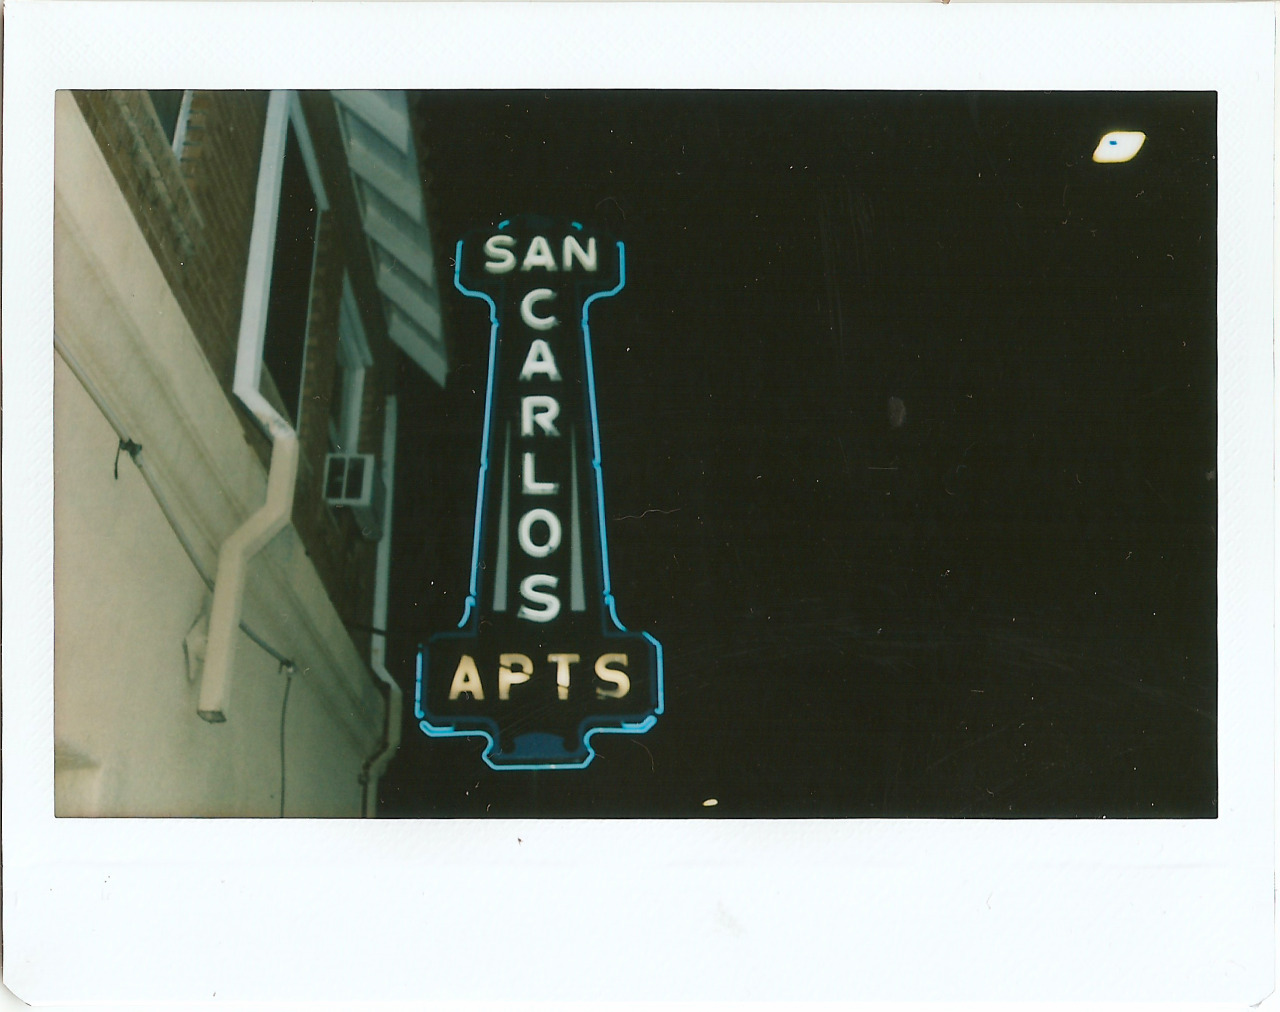 San Carlos Apartments' original neon sign from 1930